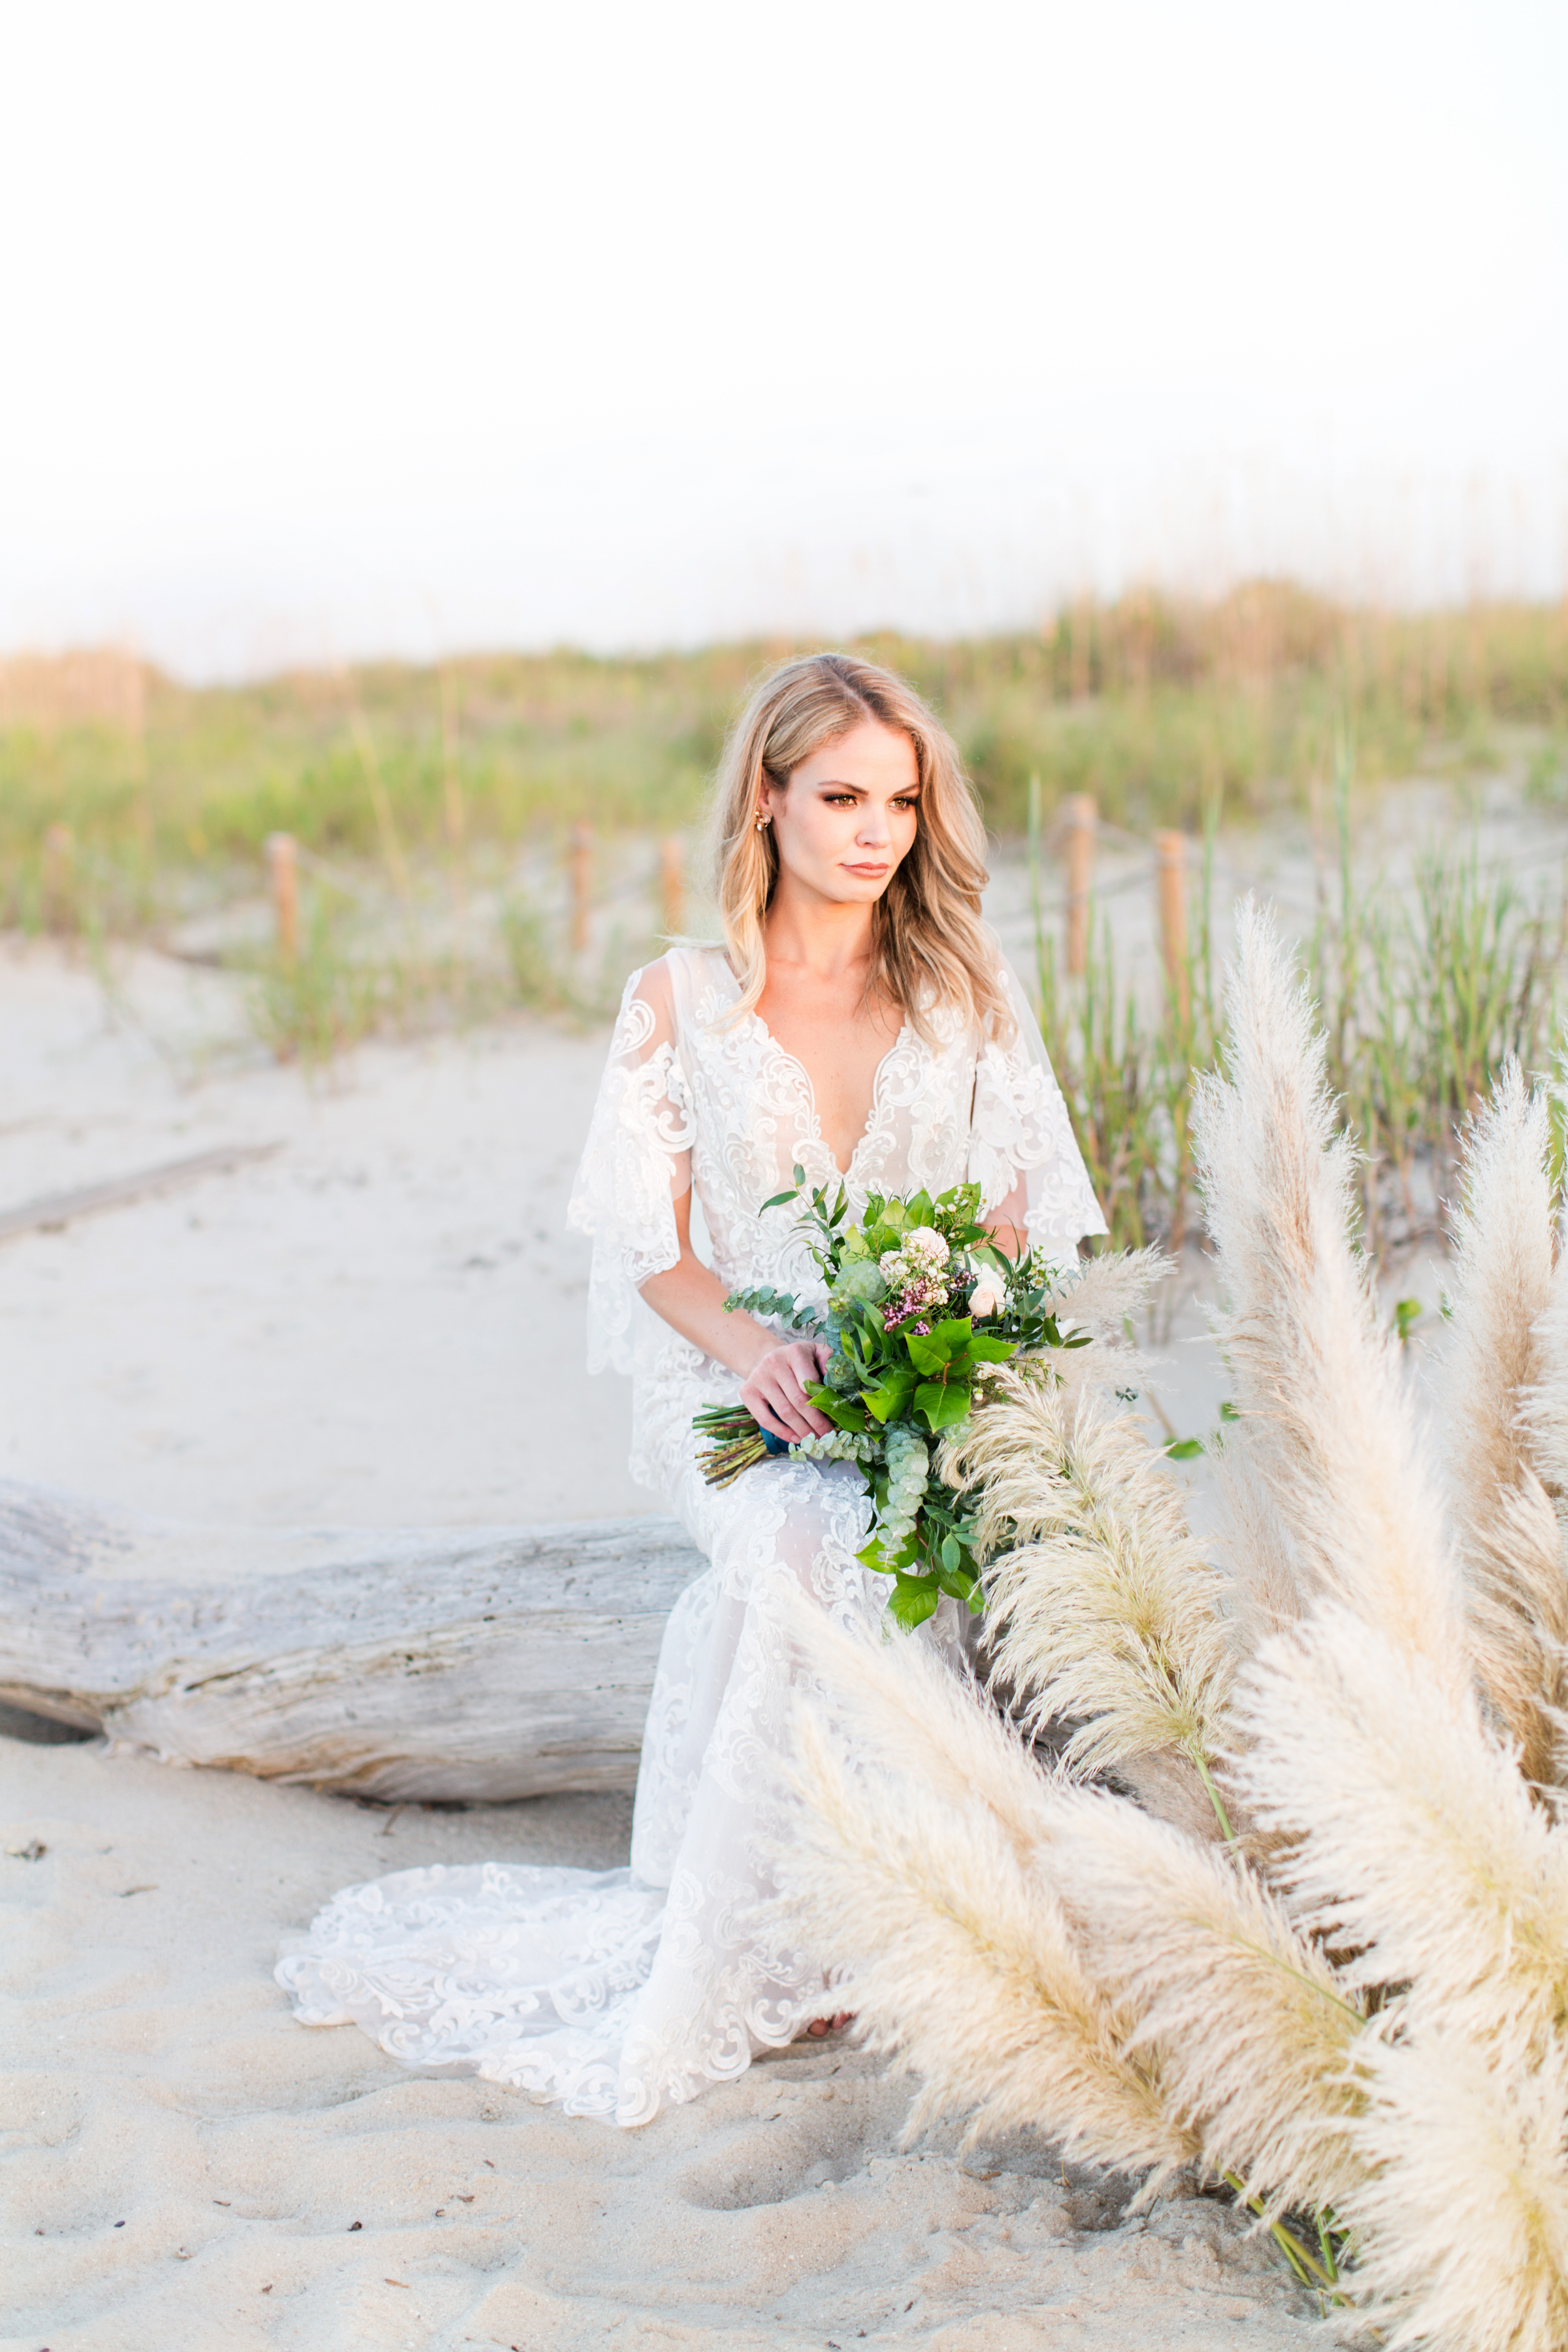 HAIR AND MAKEUP DEETS: We wanted to keep the vibe feeling soft. Pretty. Enhanced but not over-done! We opted for a signature blow out on our bride, full airbrush makeup- soft contour (more highlight!), and a soft rust/ bronze smokey eye.